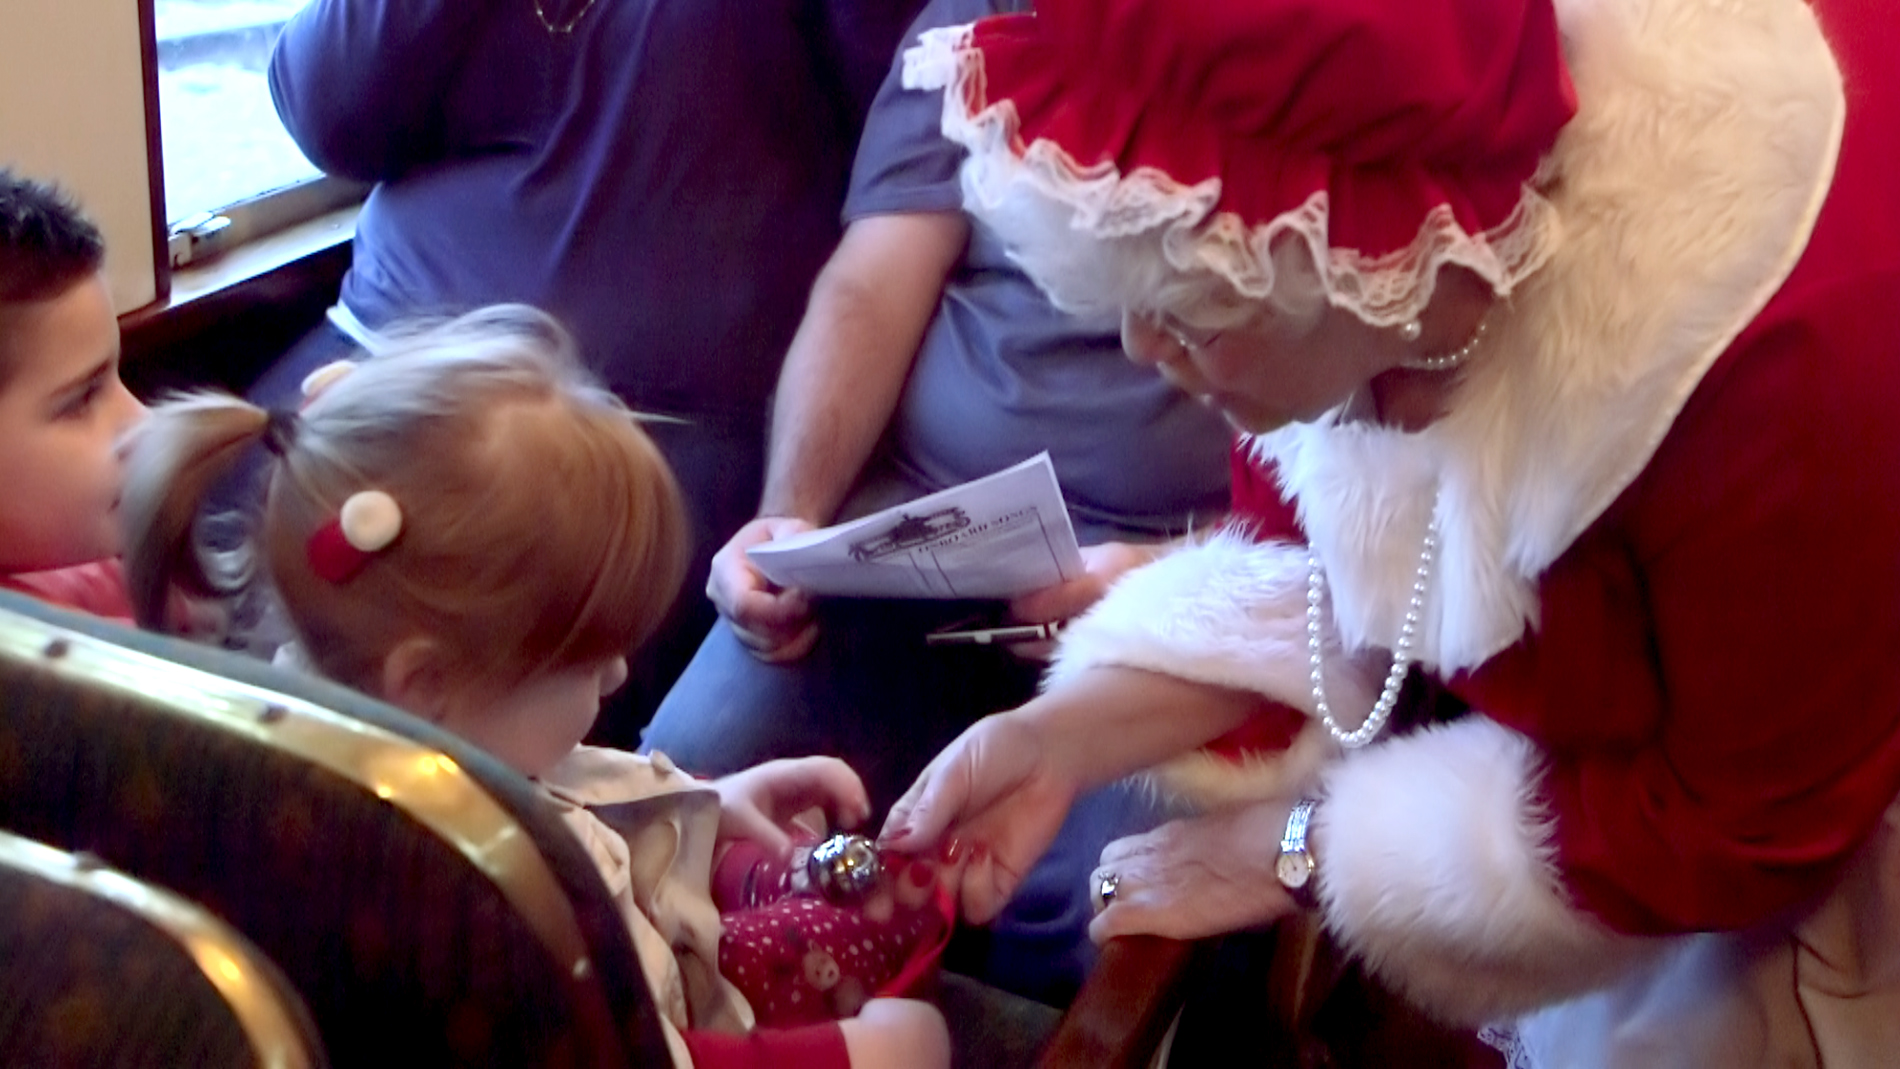 Mrs Claus Sharing A Silver Bell With the Children